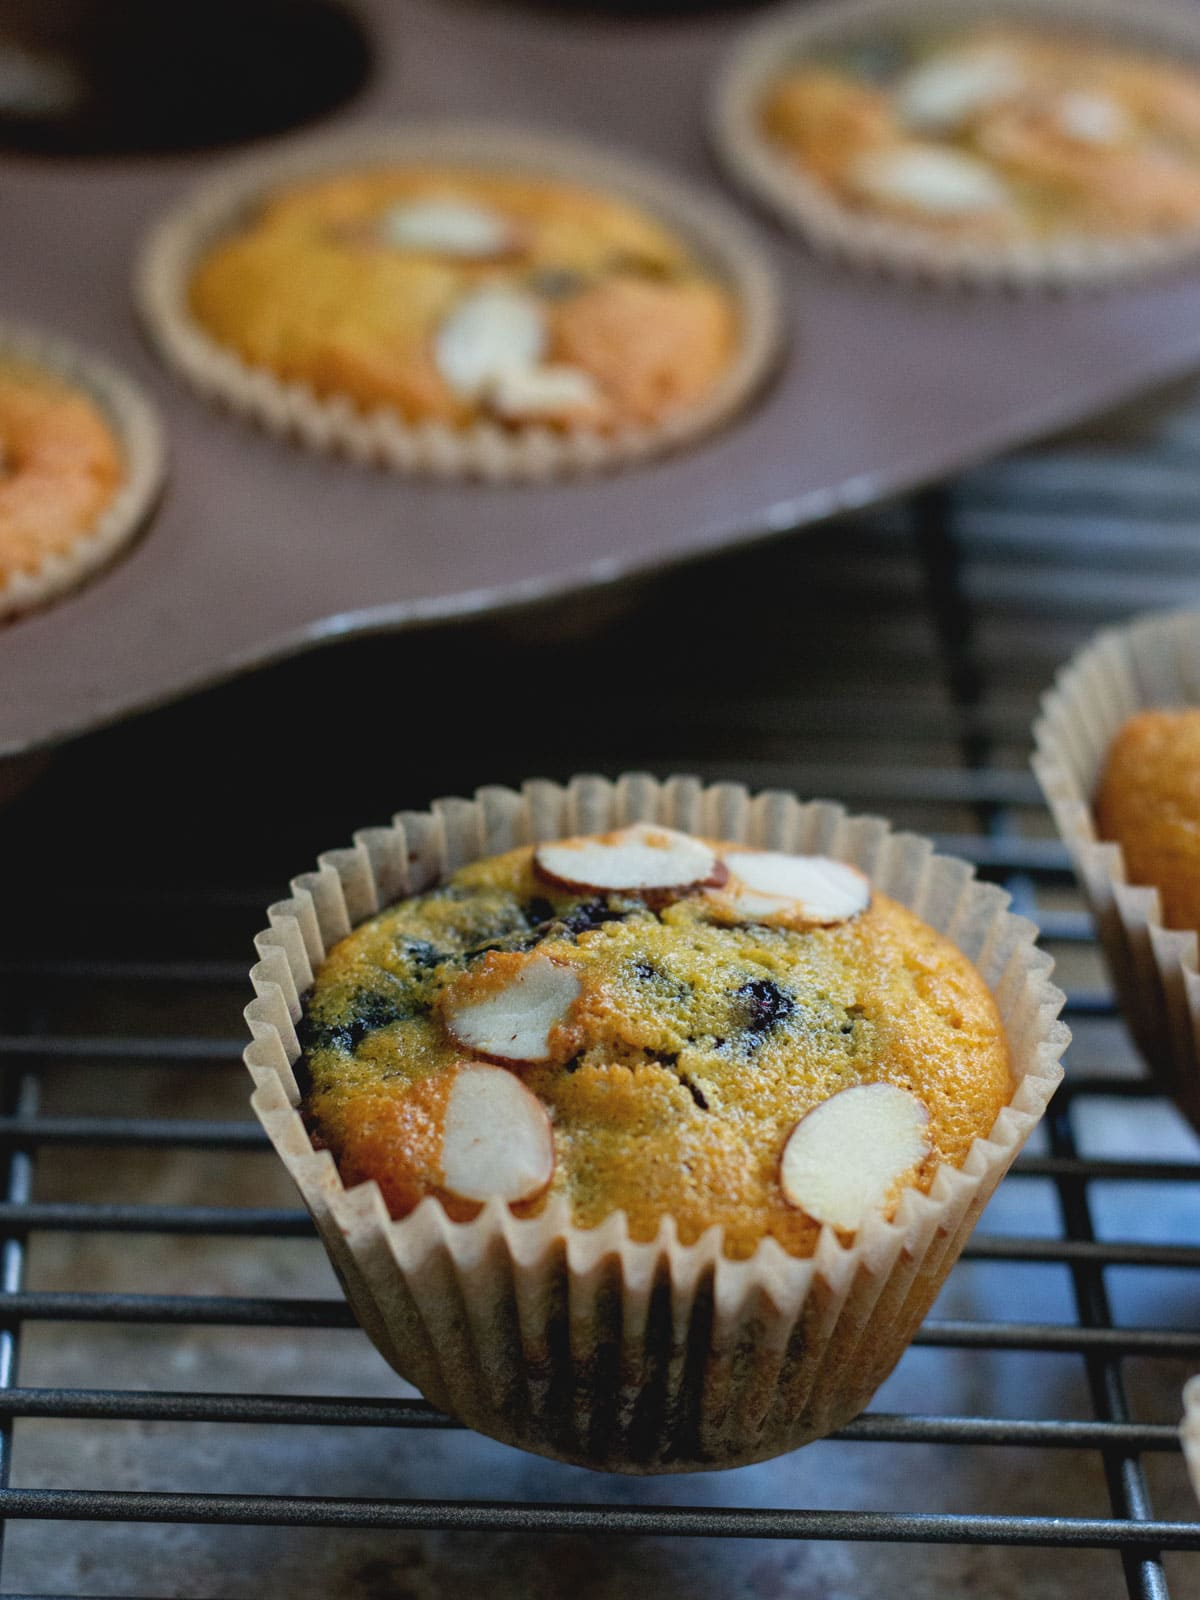 These Almond Blueberry Muffins are made with coconut flour and are lightly sweetened. A perfect start to any morning.